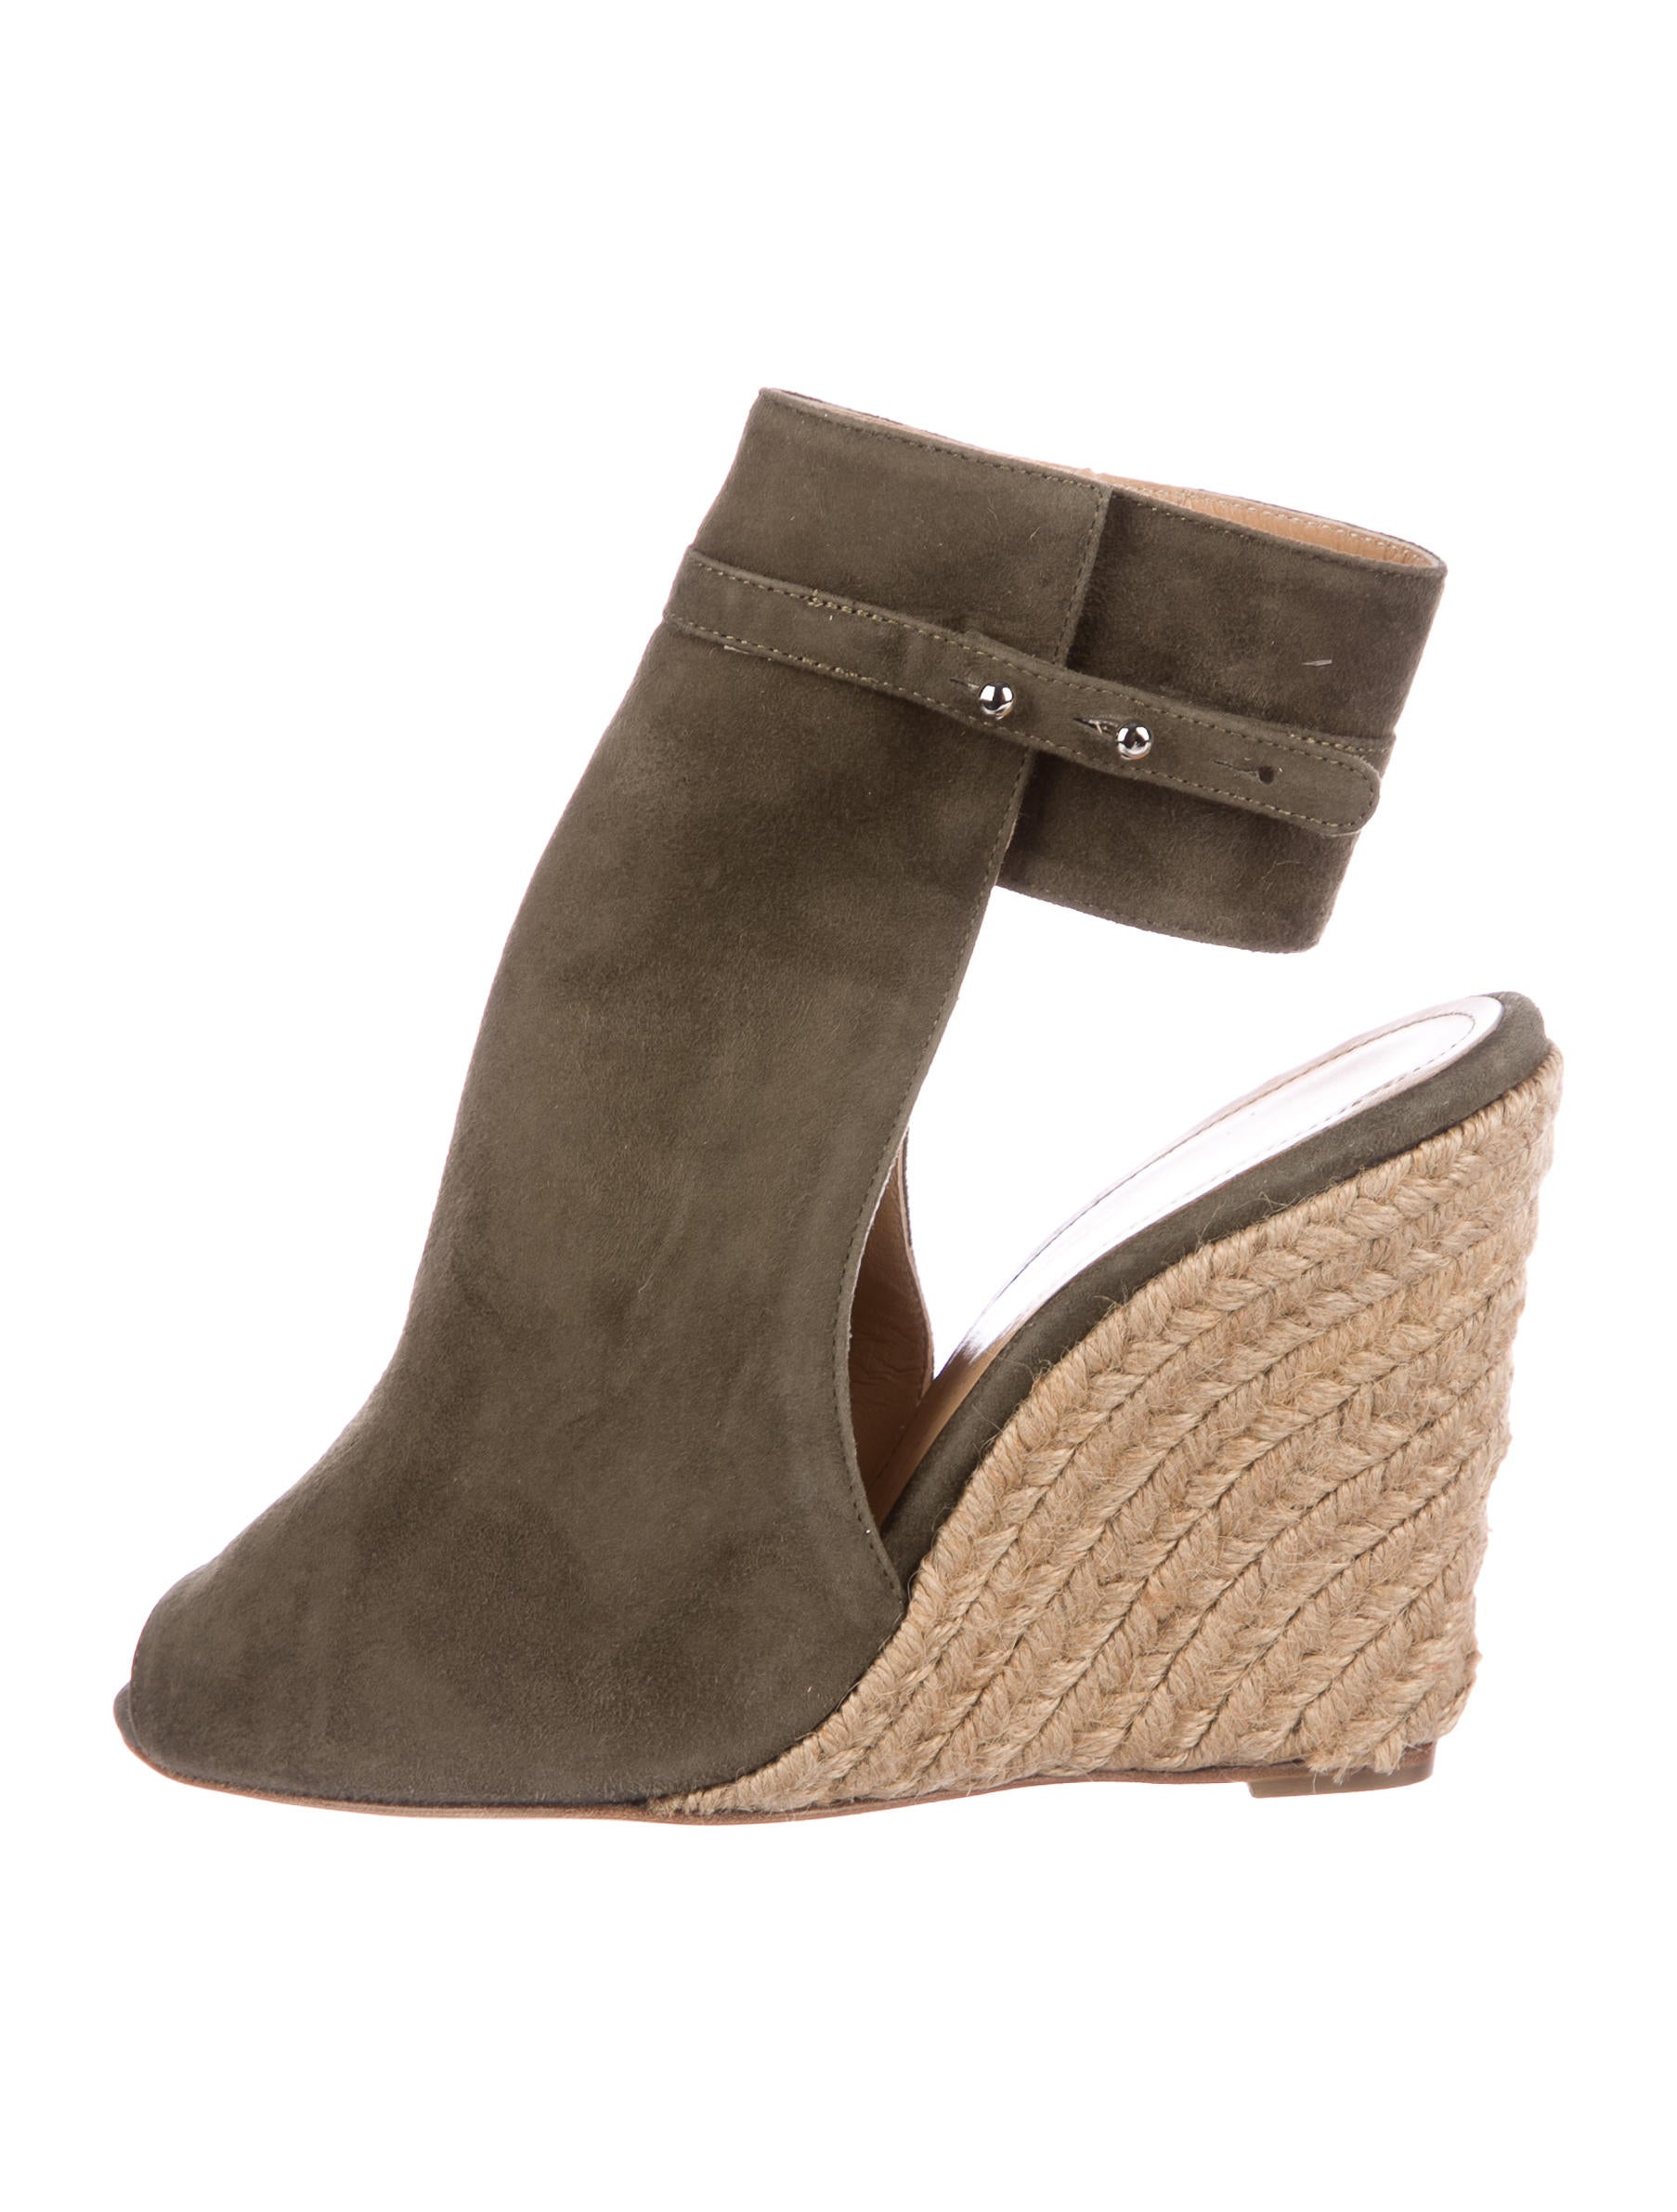 discount outlet store discount top quality Hôtel Particulier Suede Espadrille Wedges w/ Tags sale browse cheap sale limited edition online cheap price v7WYw8lsm5